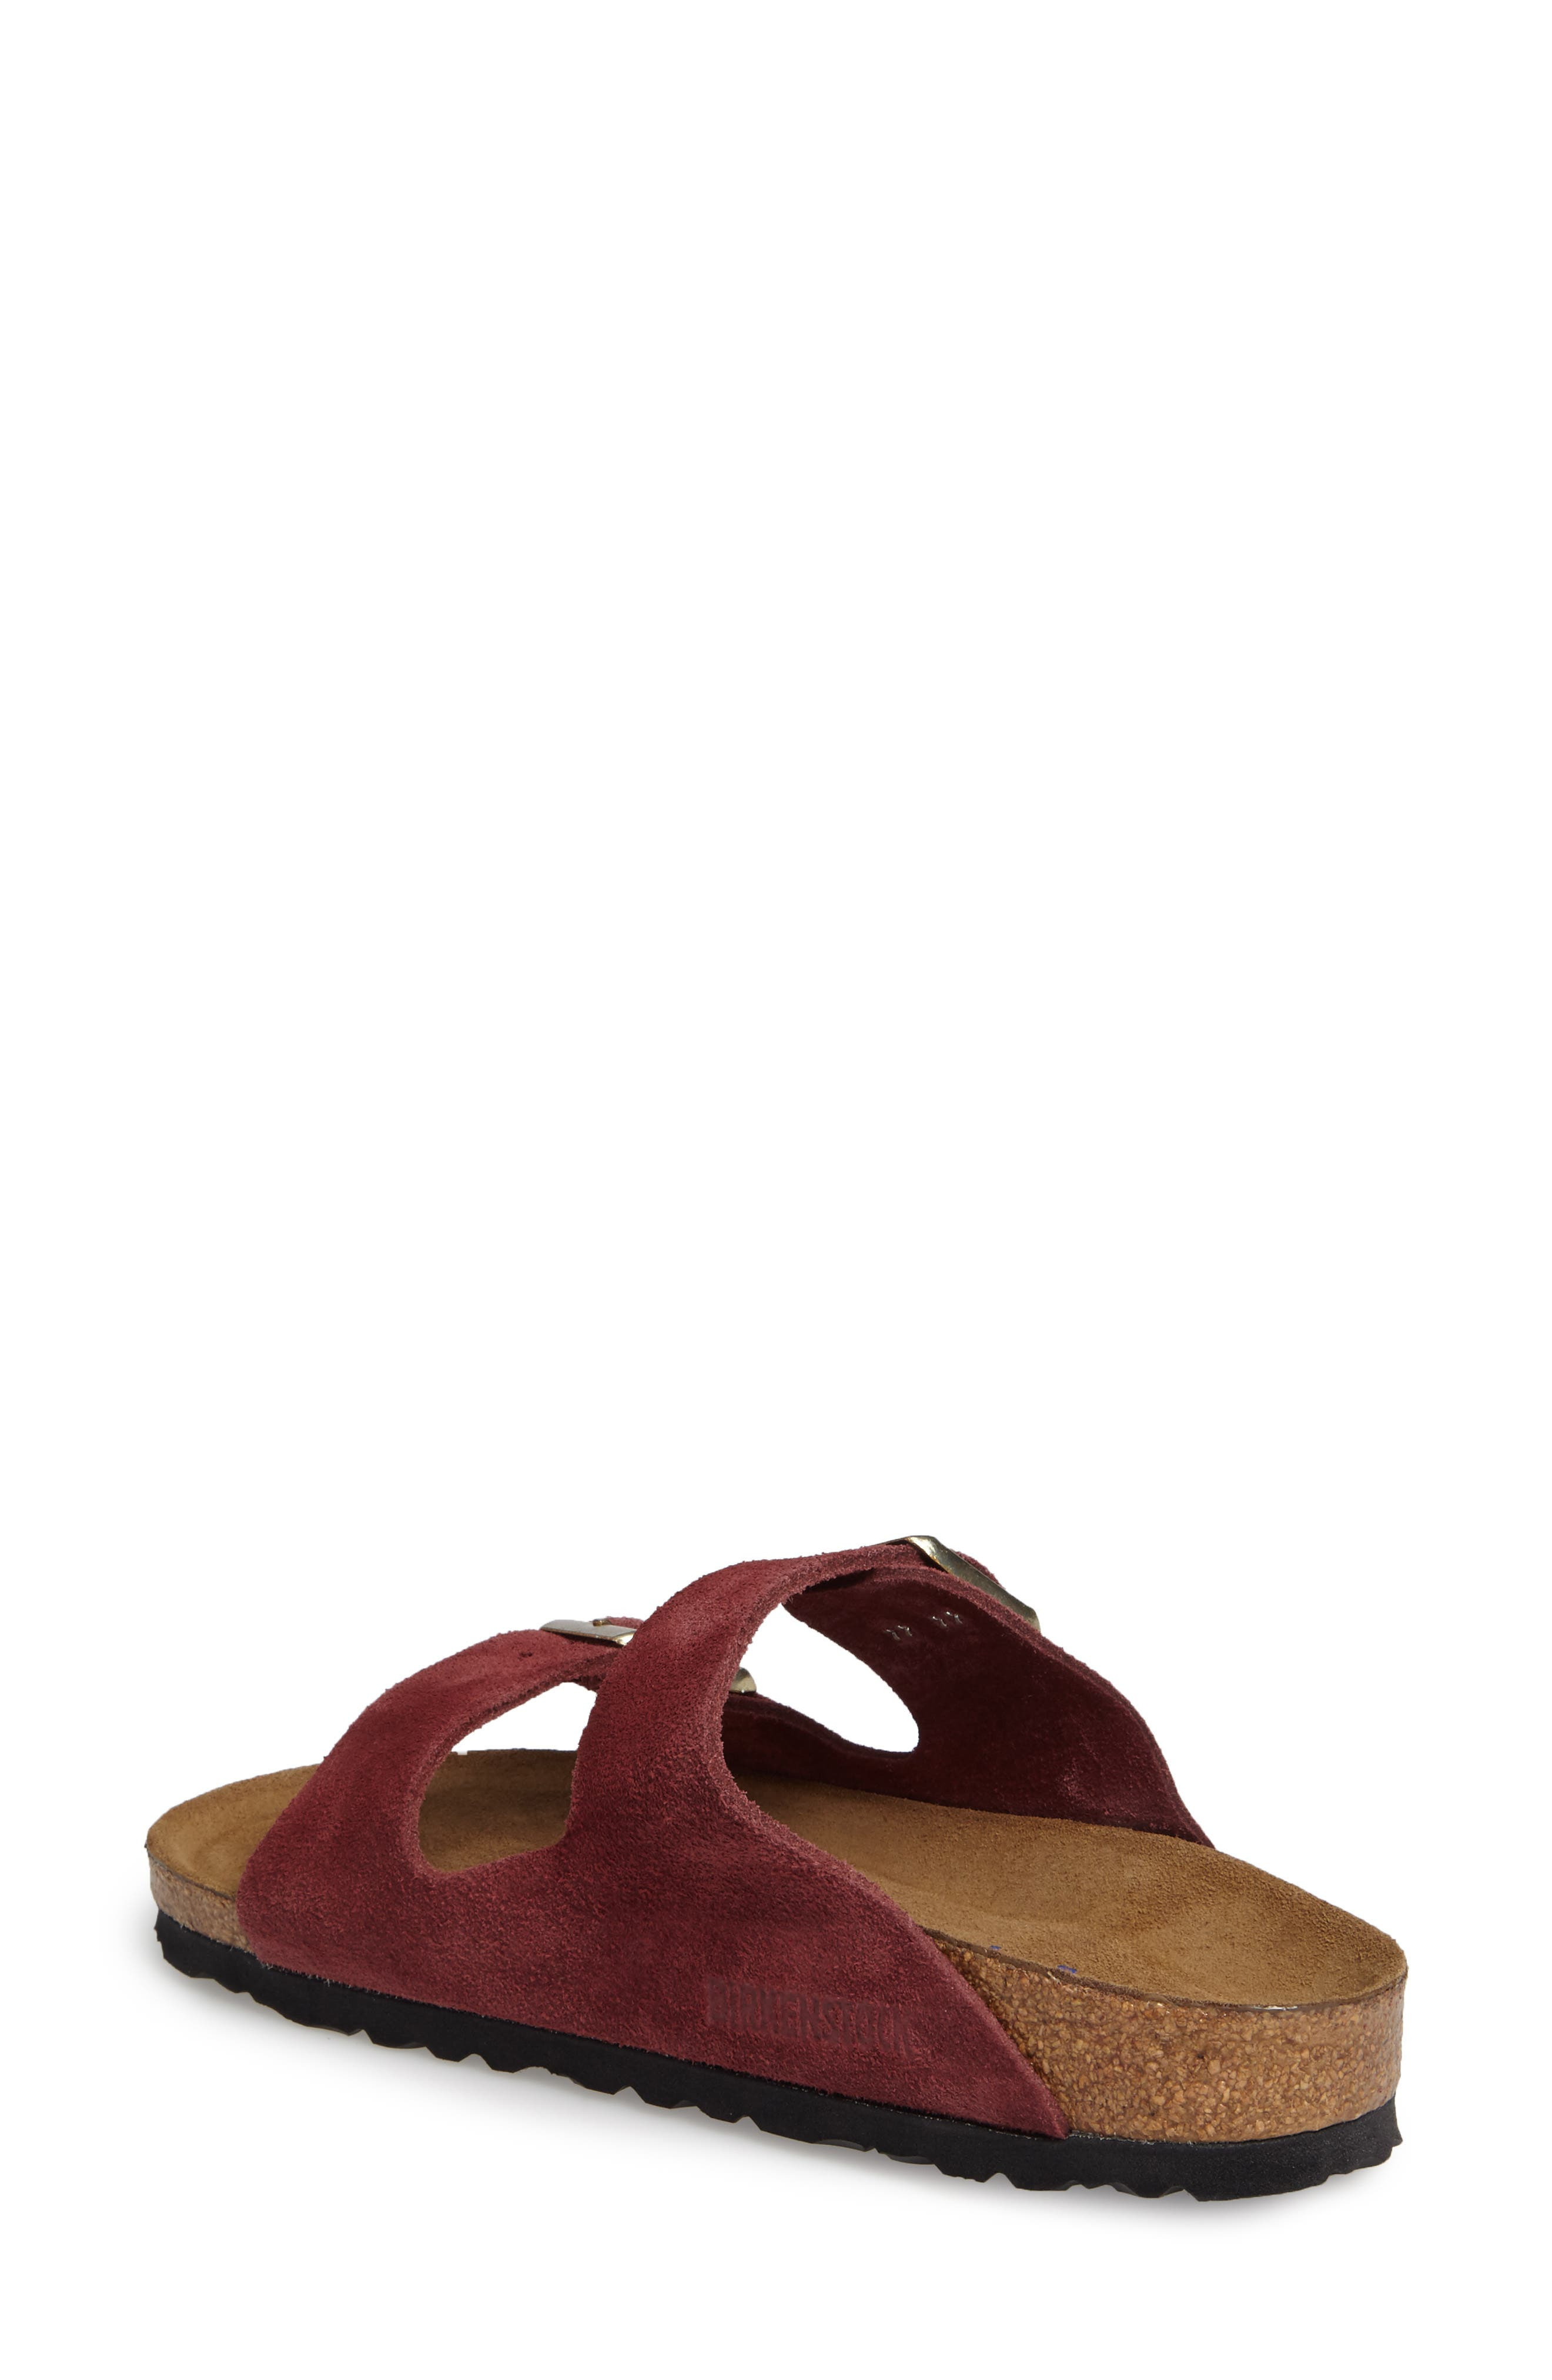 Alternate Image 2  - Birkenstock 'Arizona' Soft Footbed Suede Sandal (Women)